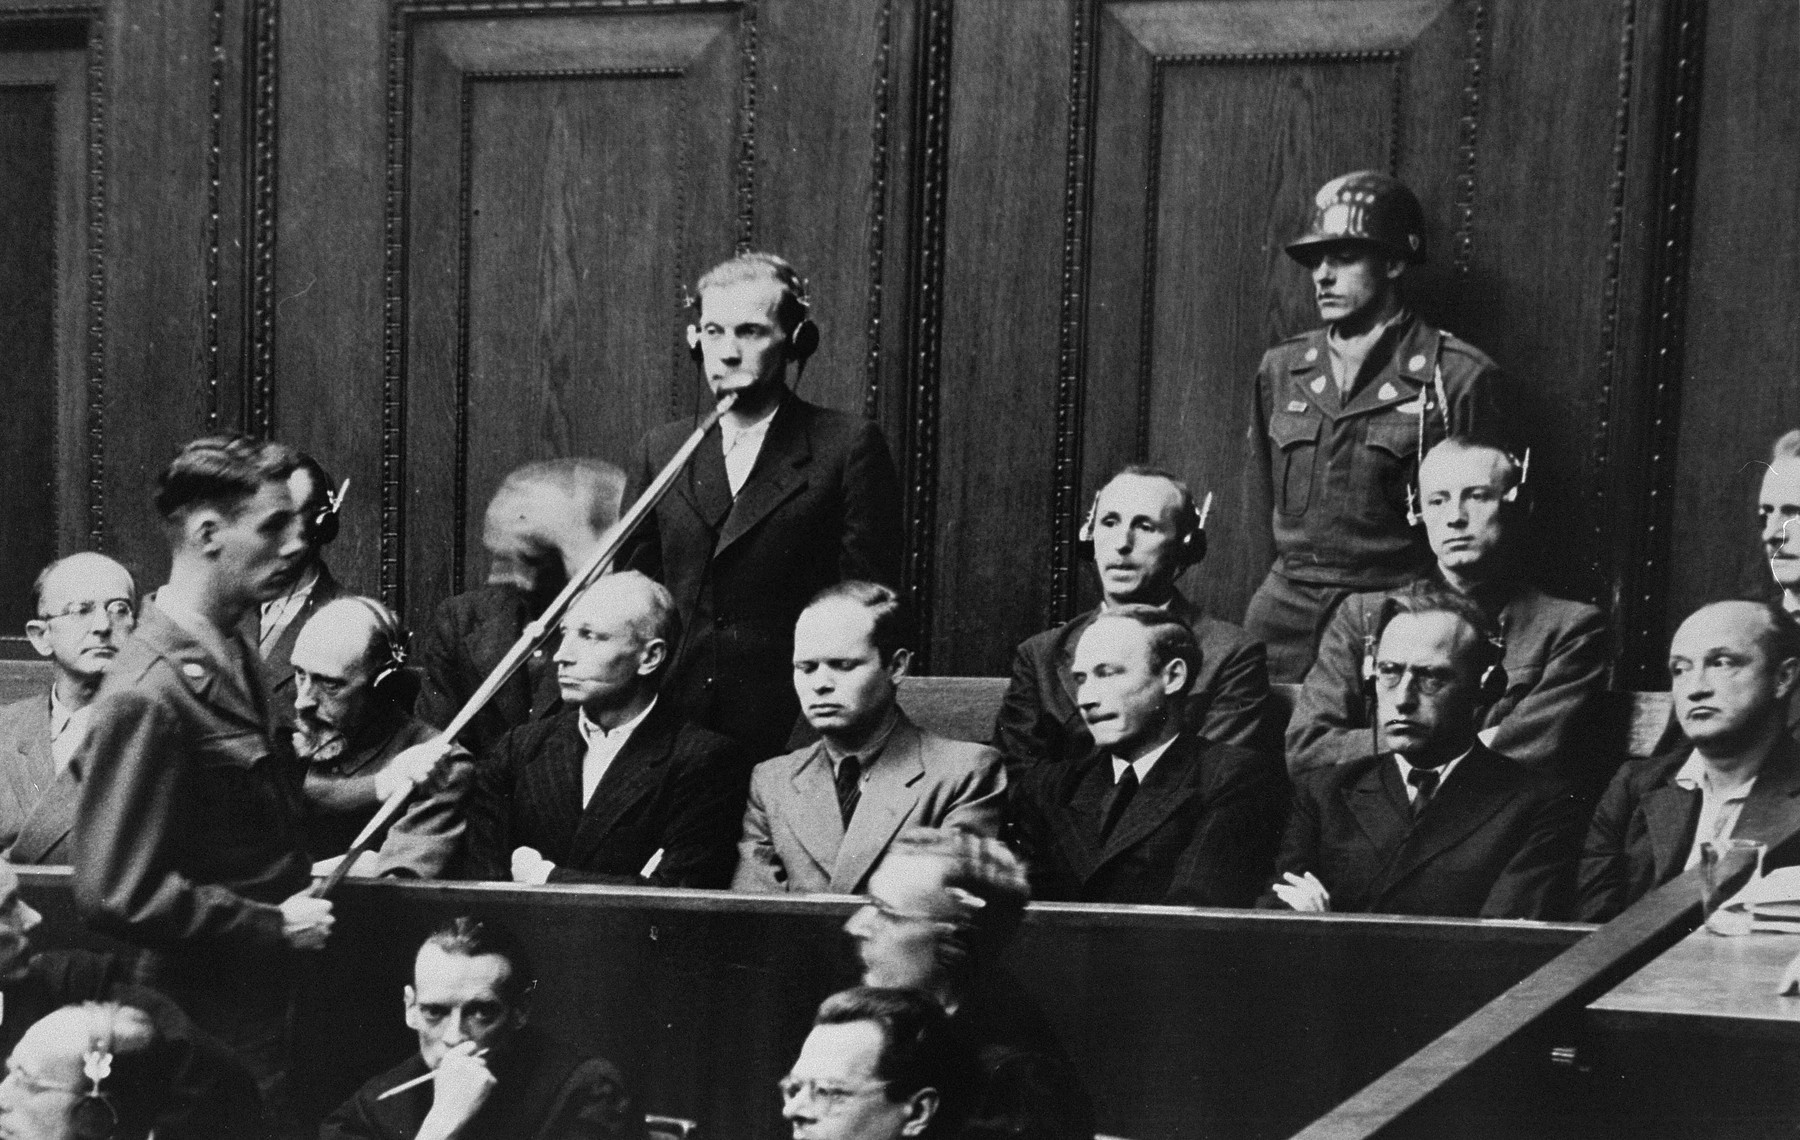 Defendant Waldemar von Radetzky pleads not guilty during his arraignment at the Einsatzgruppen Trial.